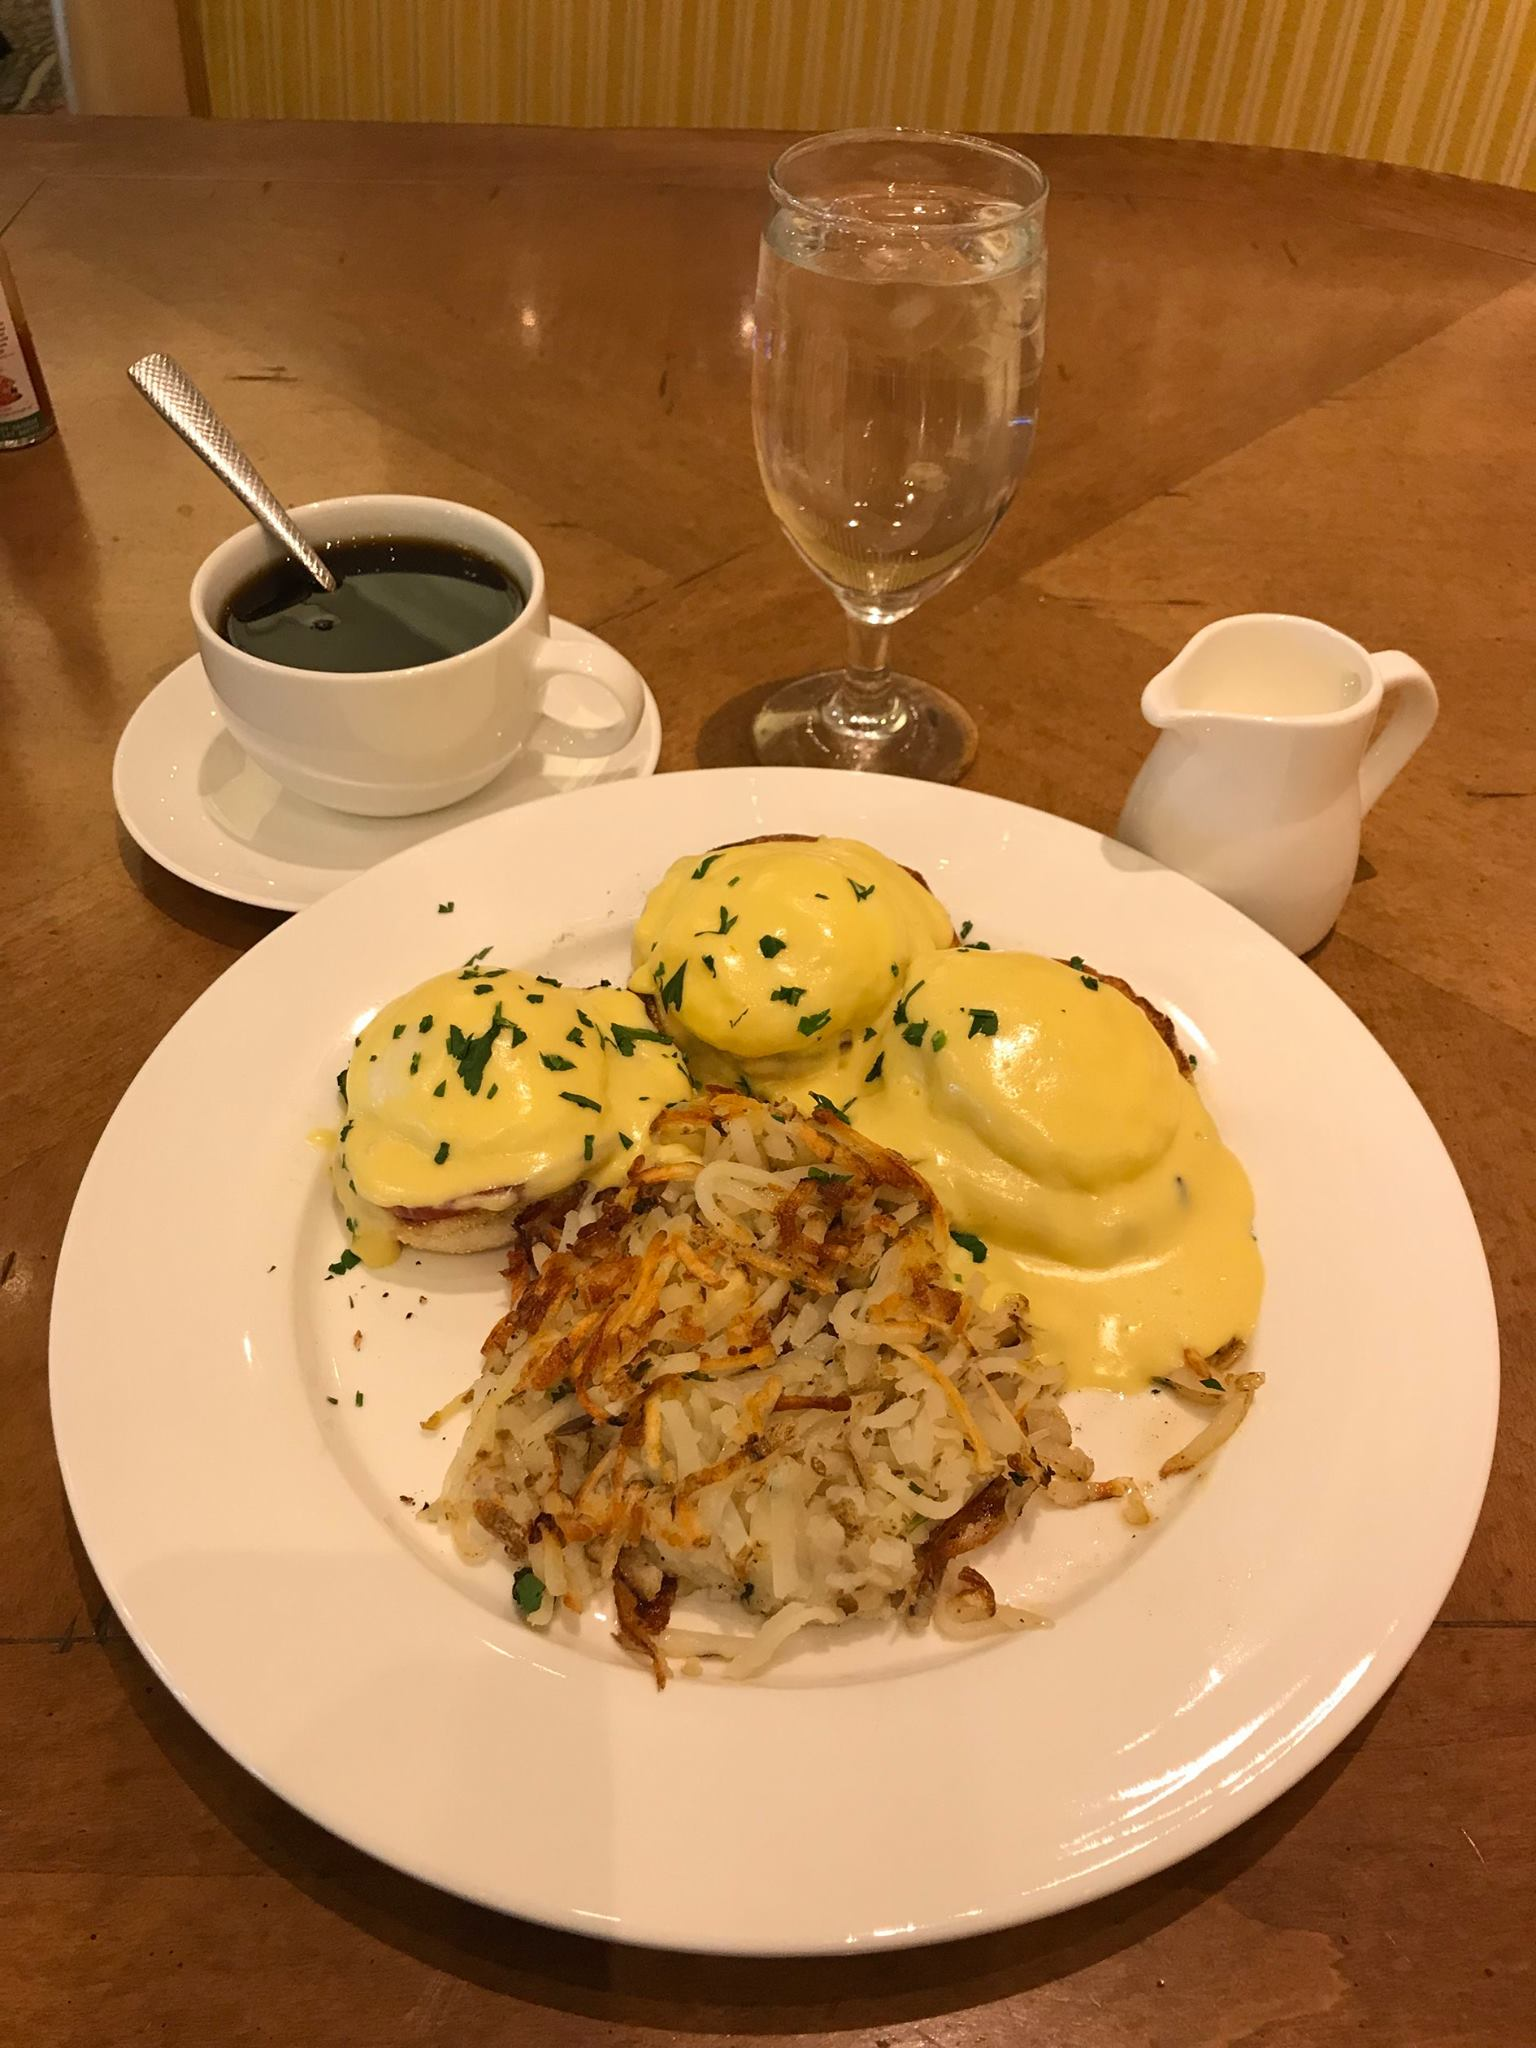 Picture of eggs Benedict, hash browns, and coffee